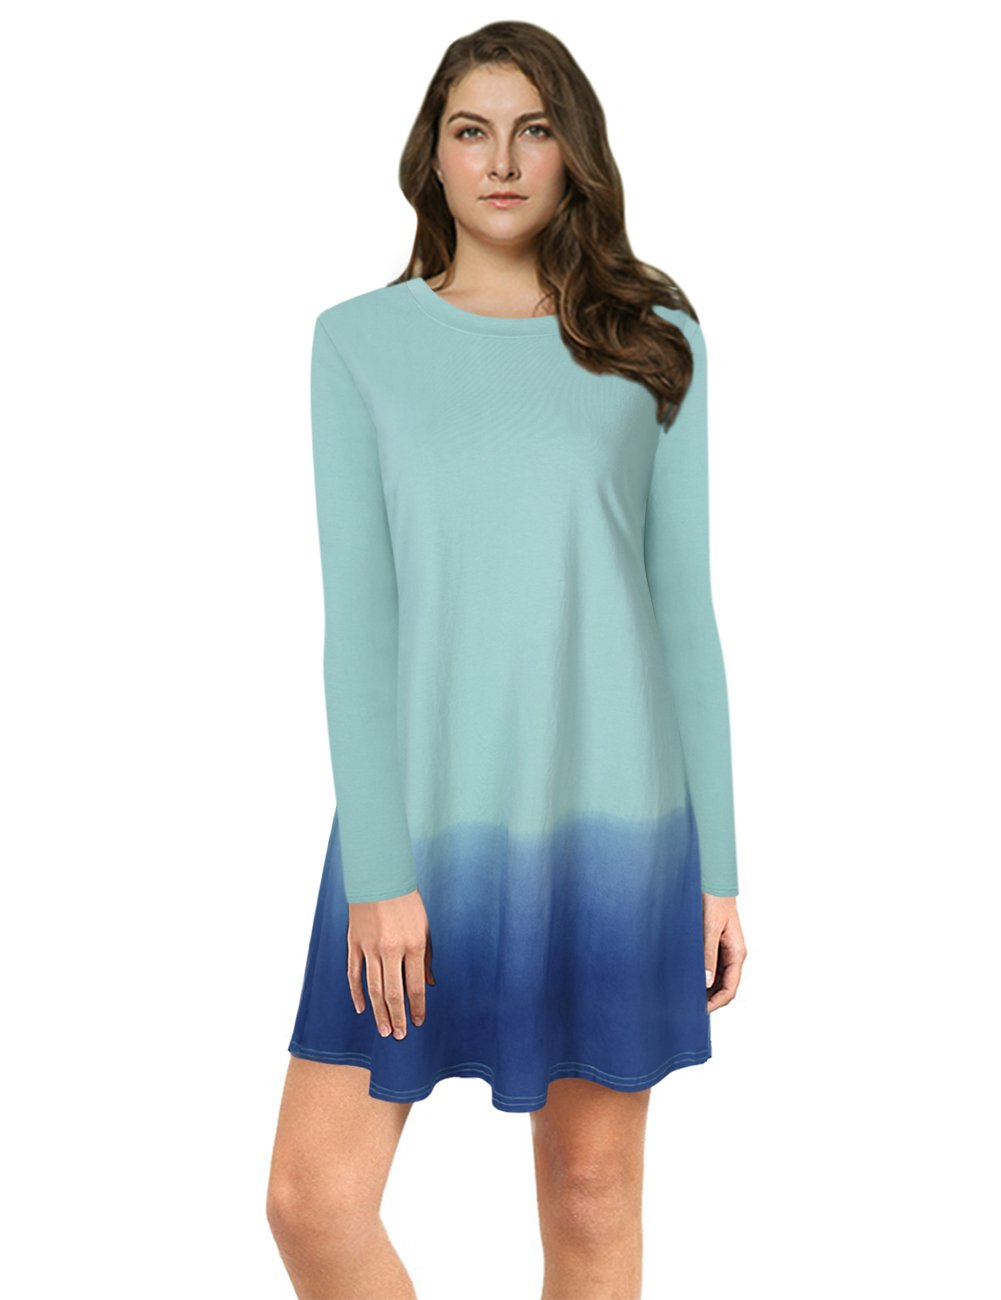 AMZ PLUS Women Plus Size Casual Tie Dye Ombre Long Sleeve Tunic T Shirt Dress Light Green XL